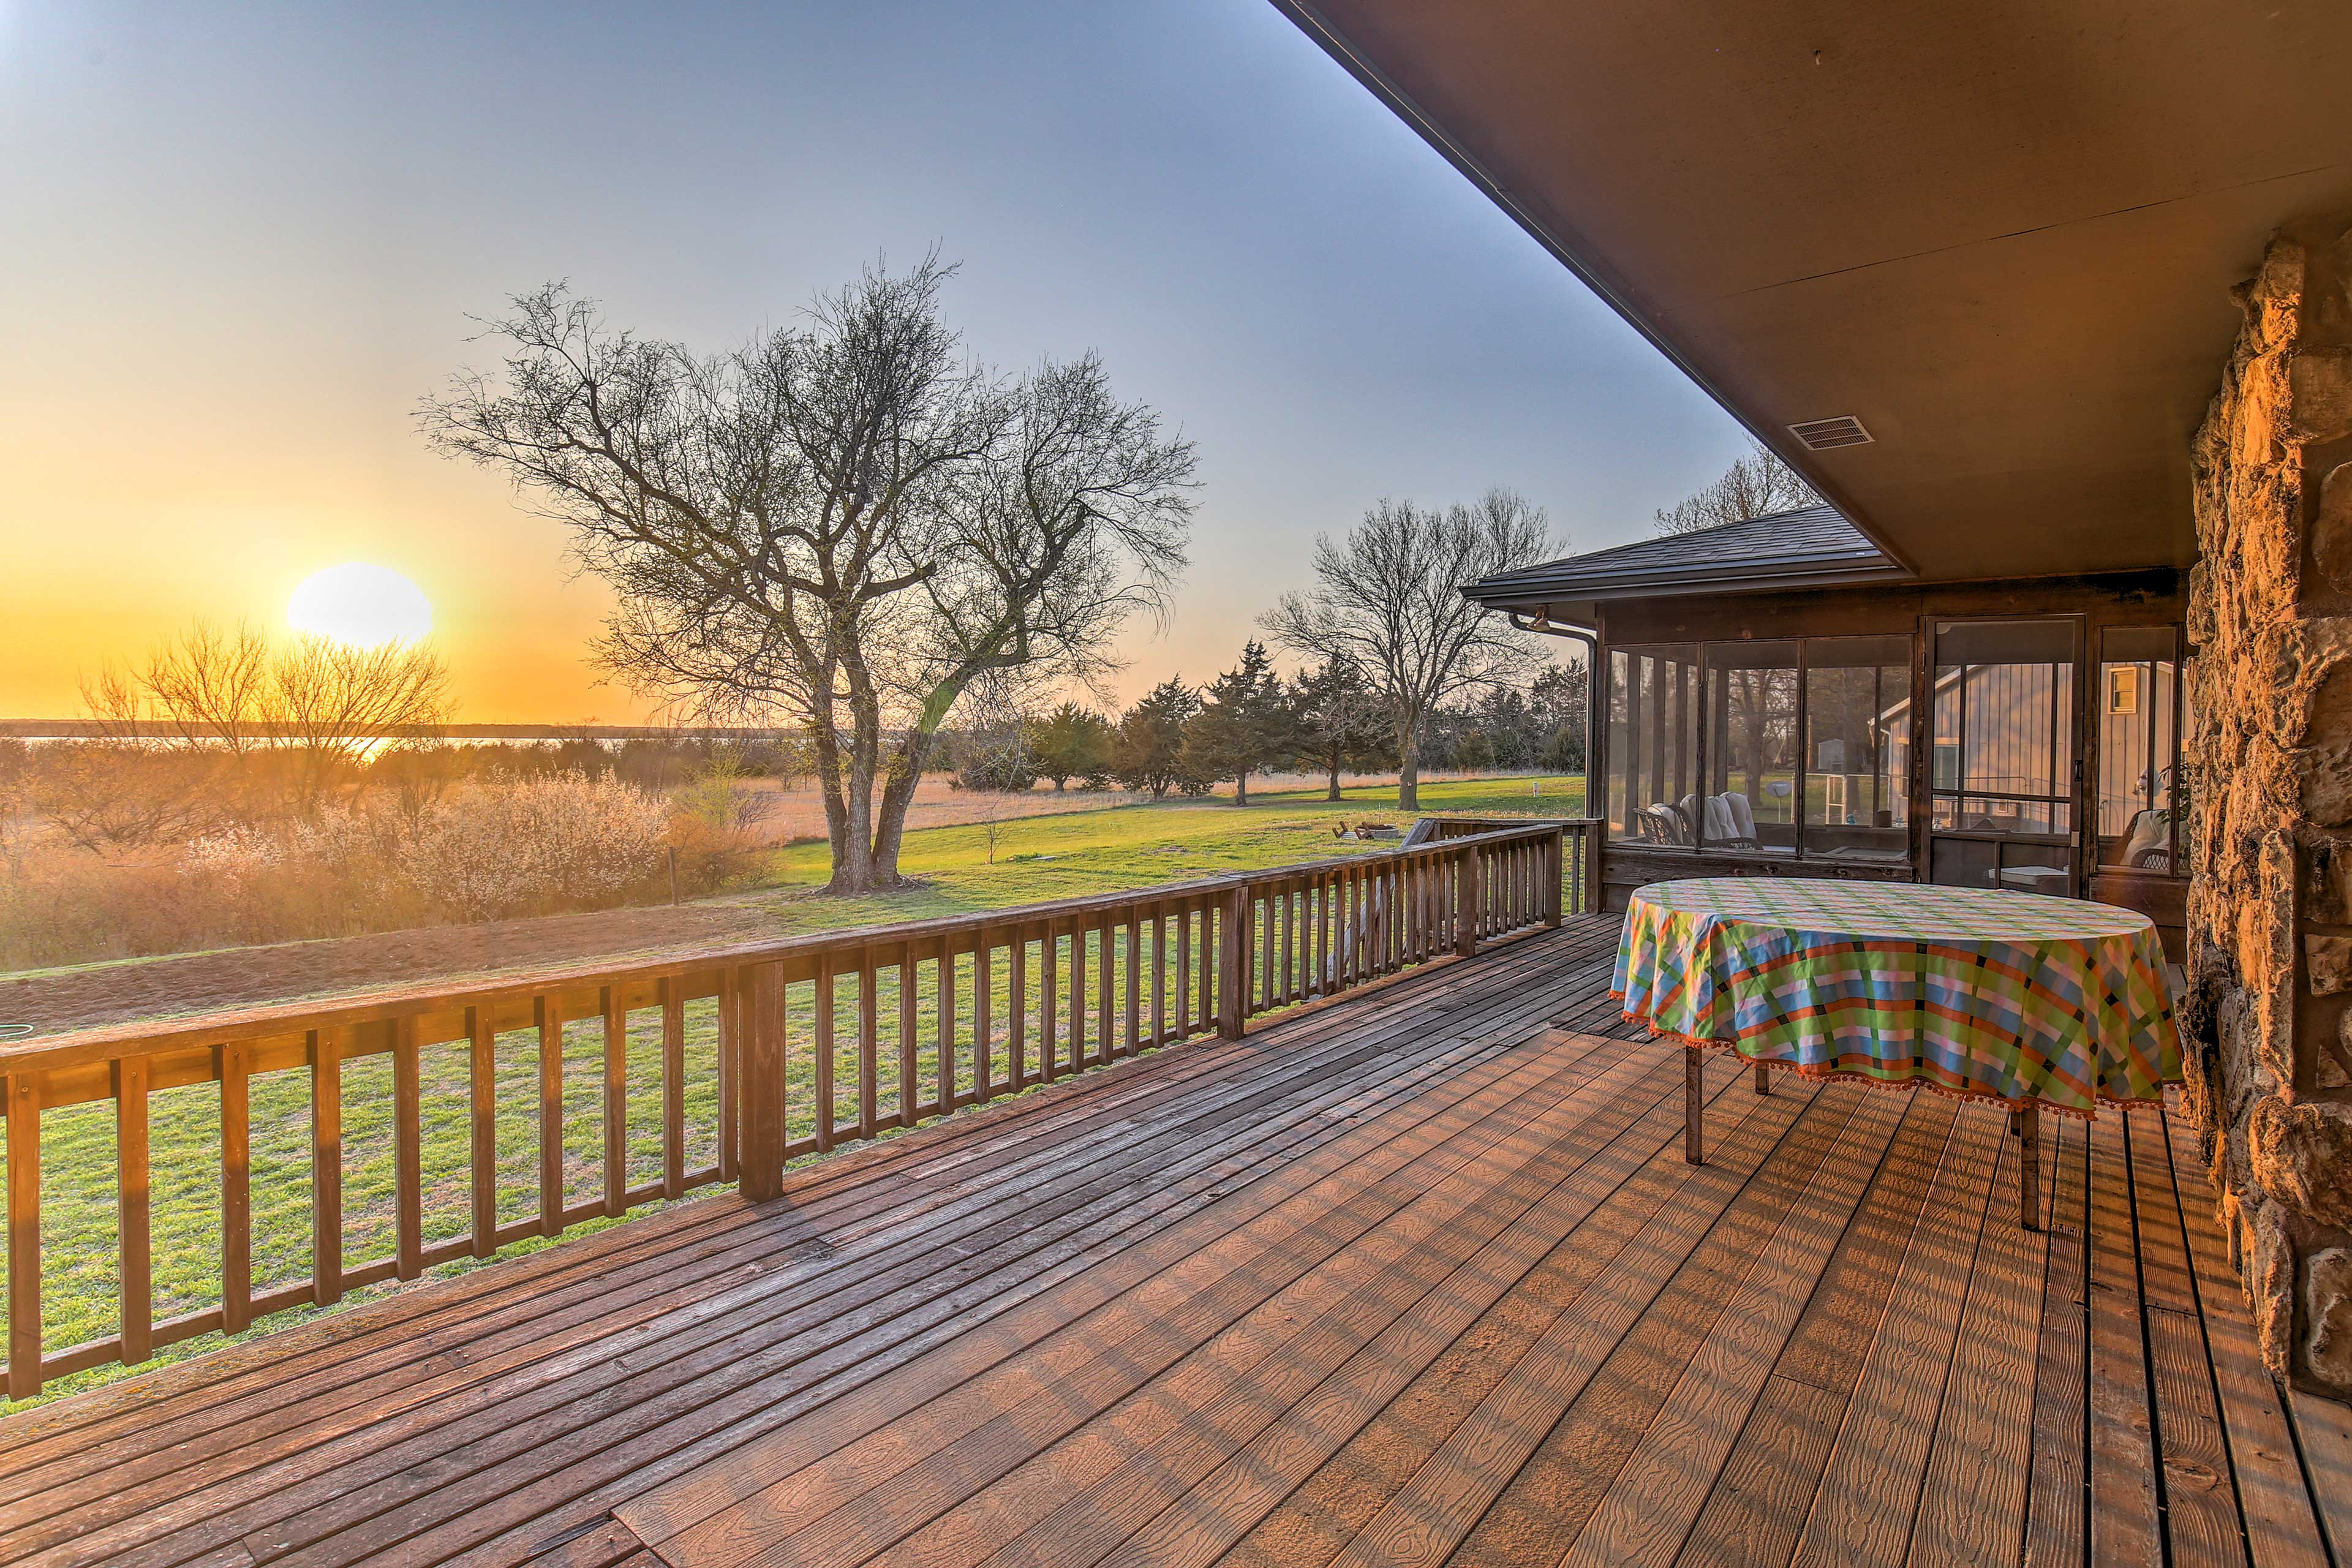 Have a barbecue using the gas grill on the spacious wood deck.